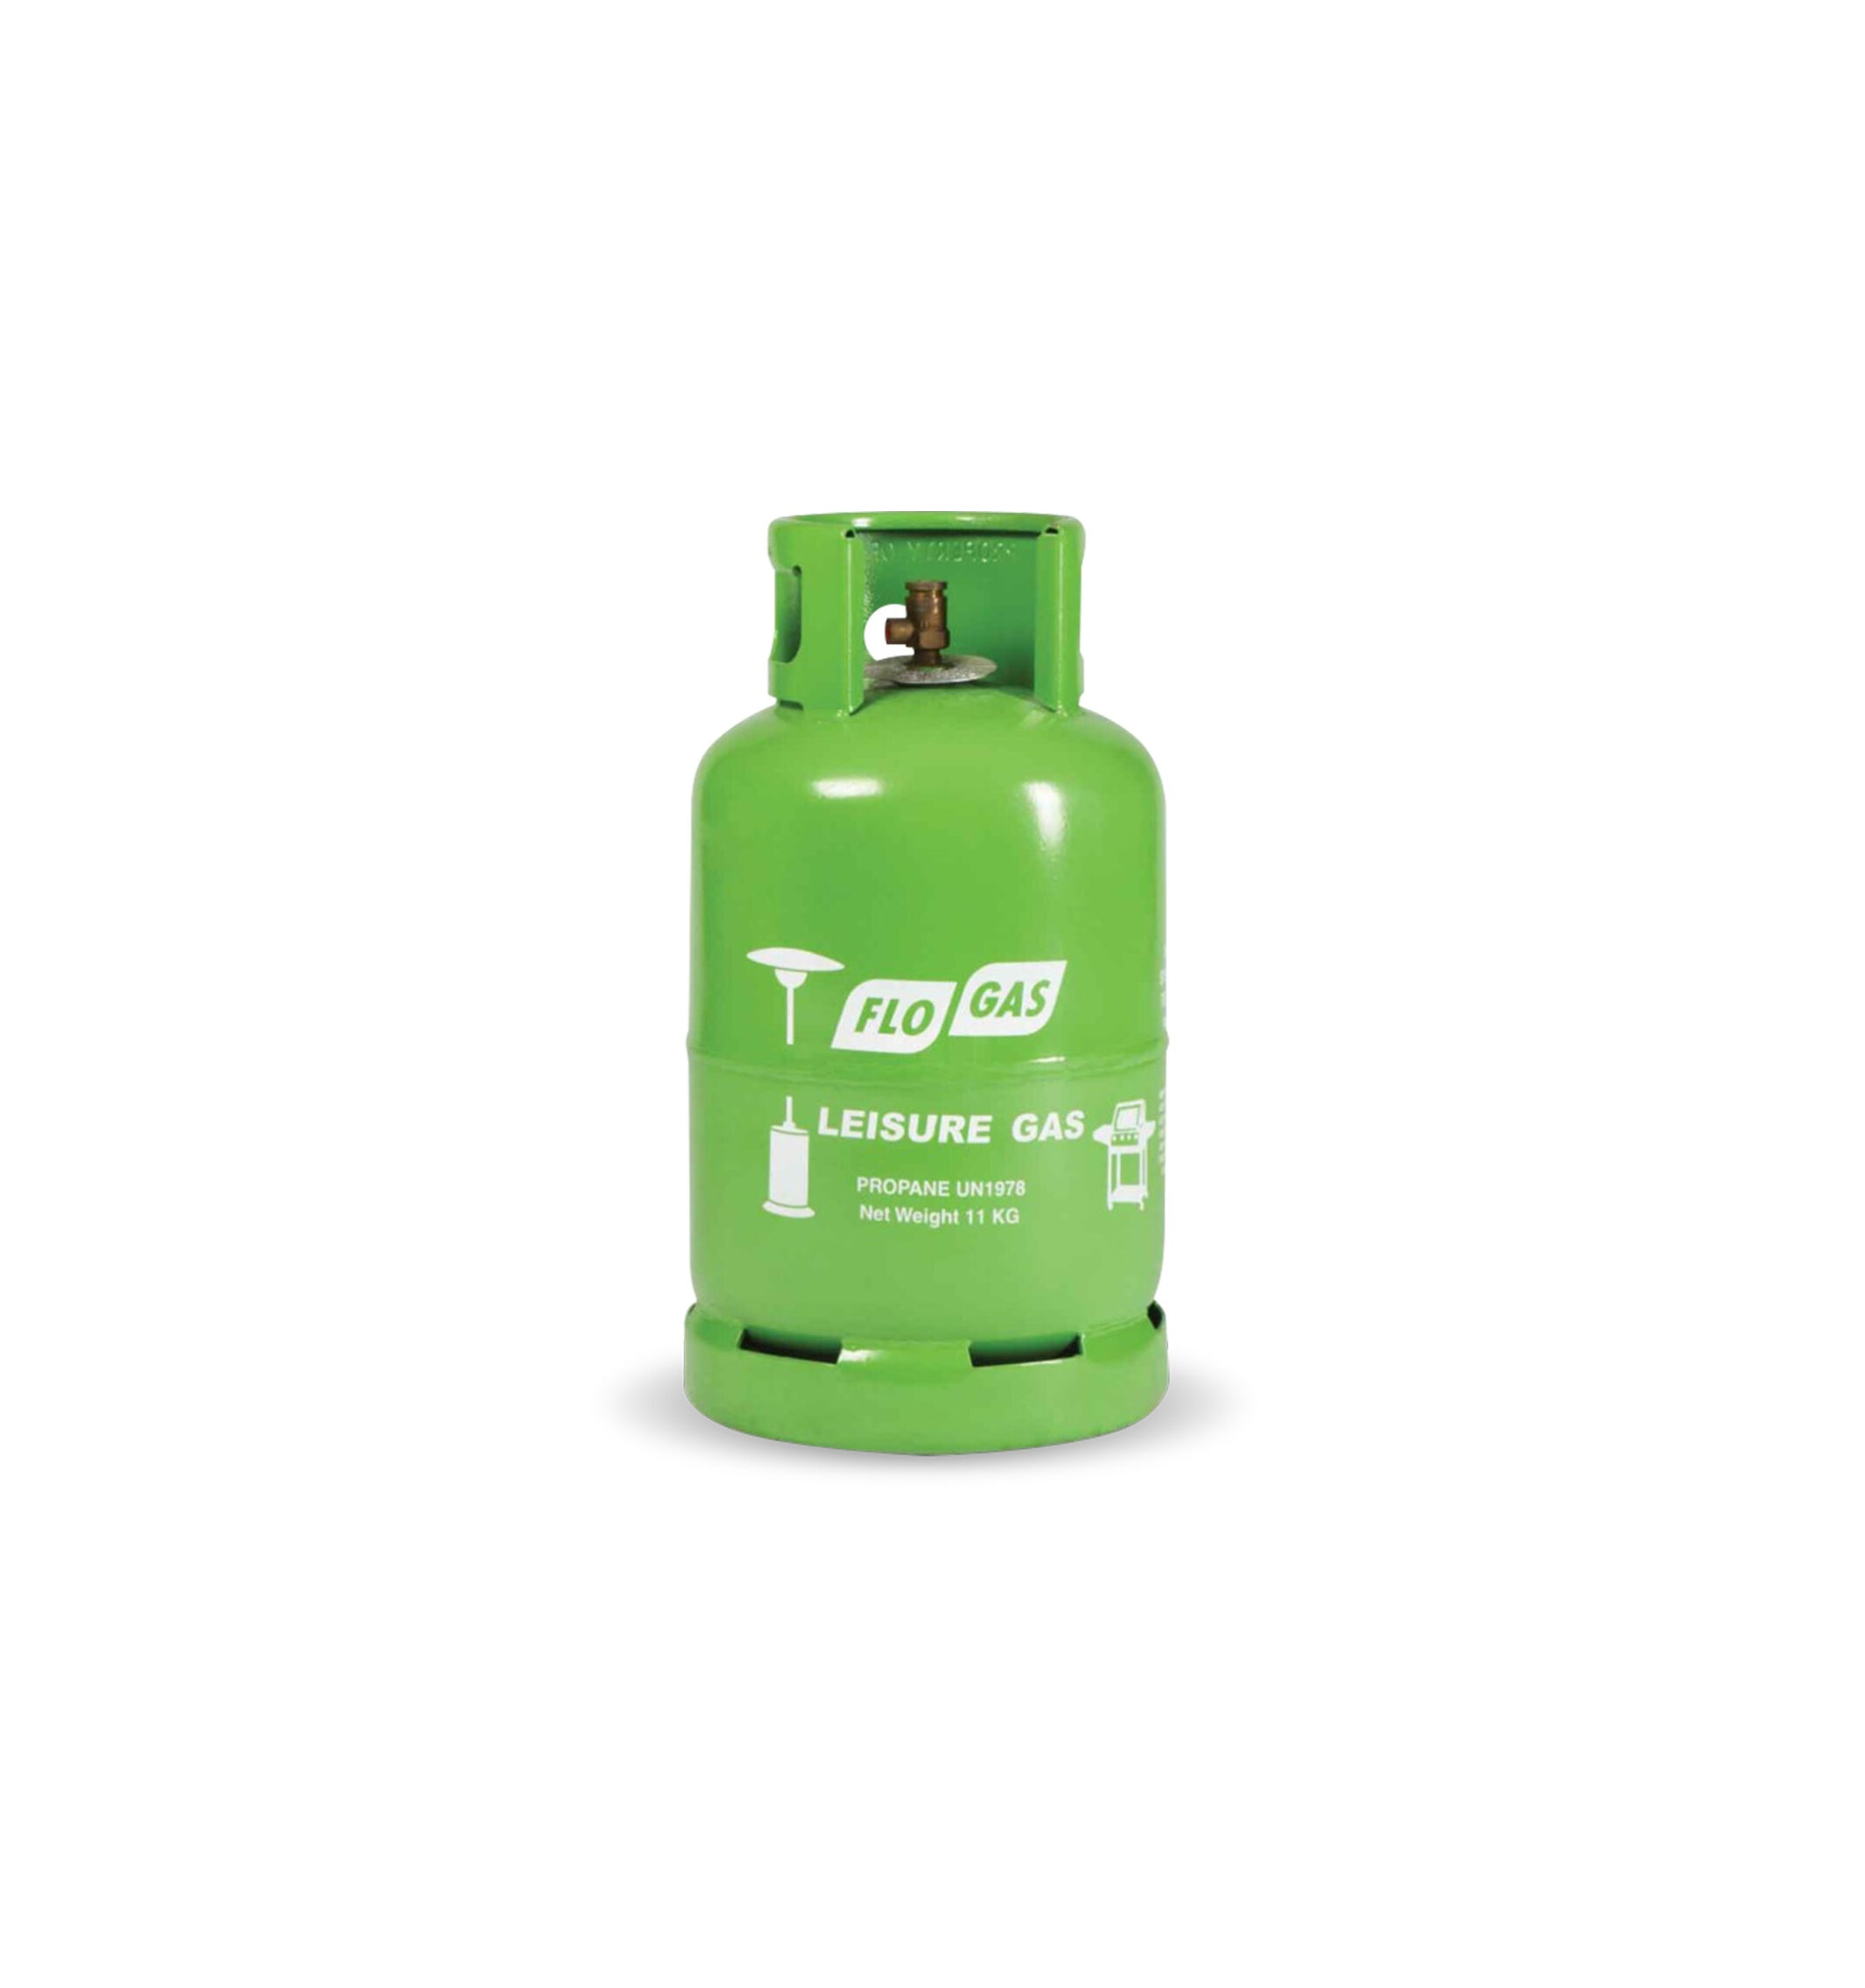 FloGas 11kg Leisure Gas Bottle